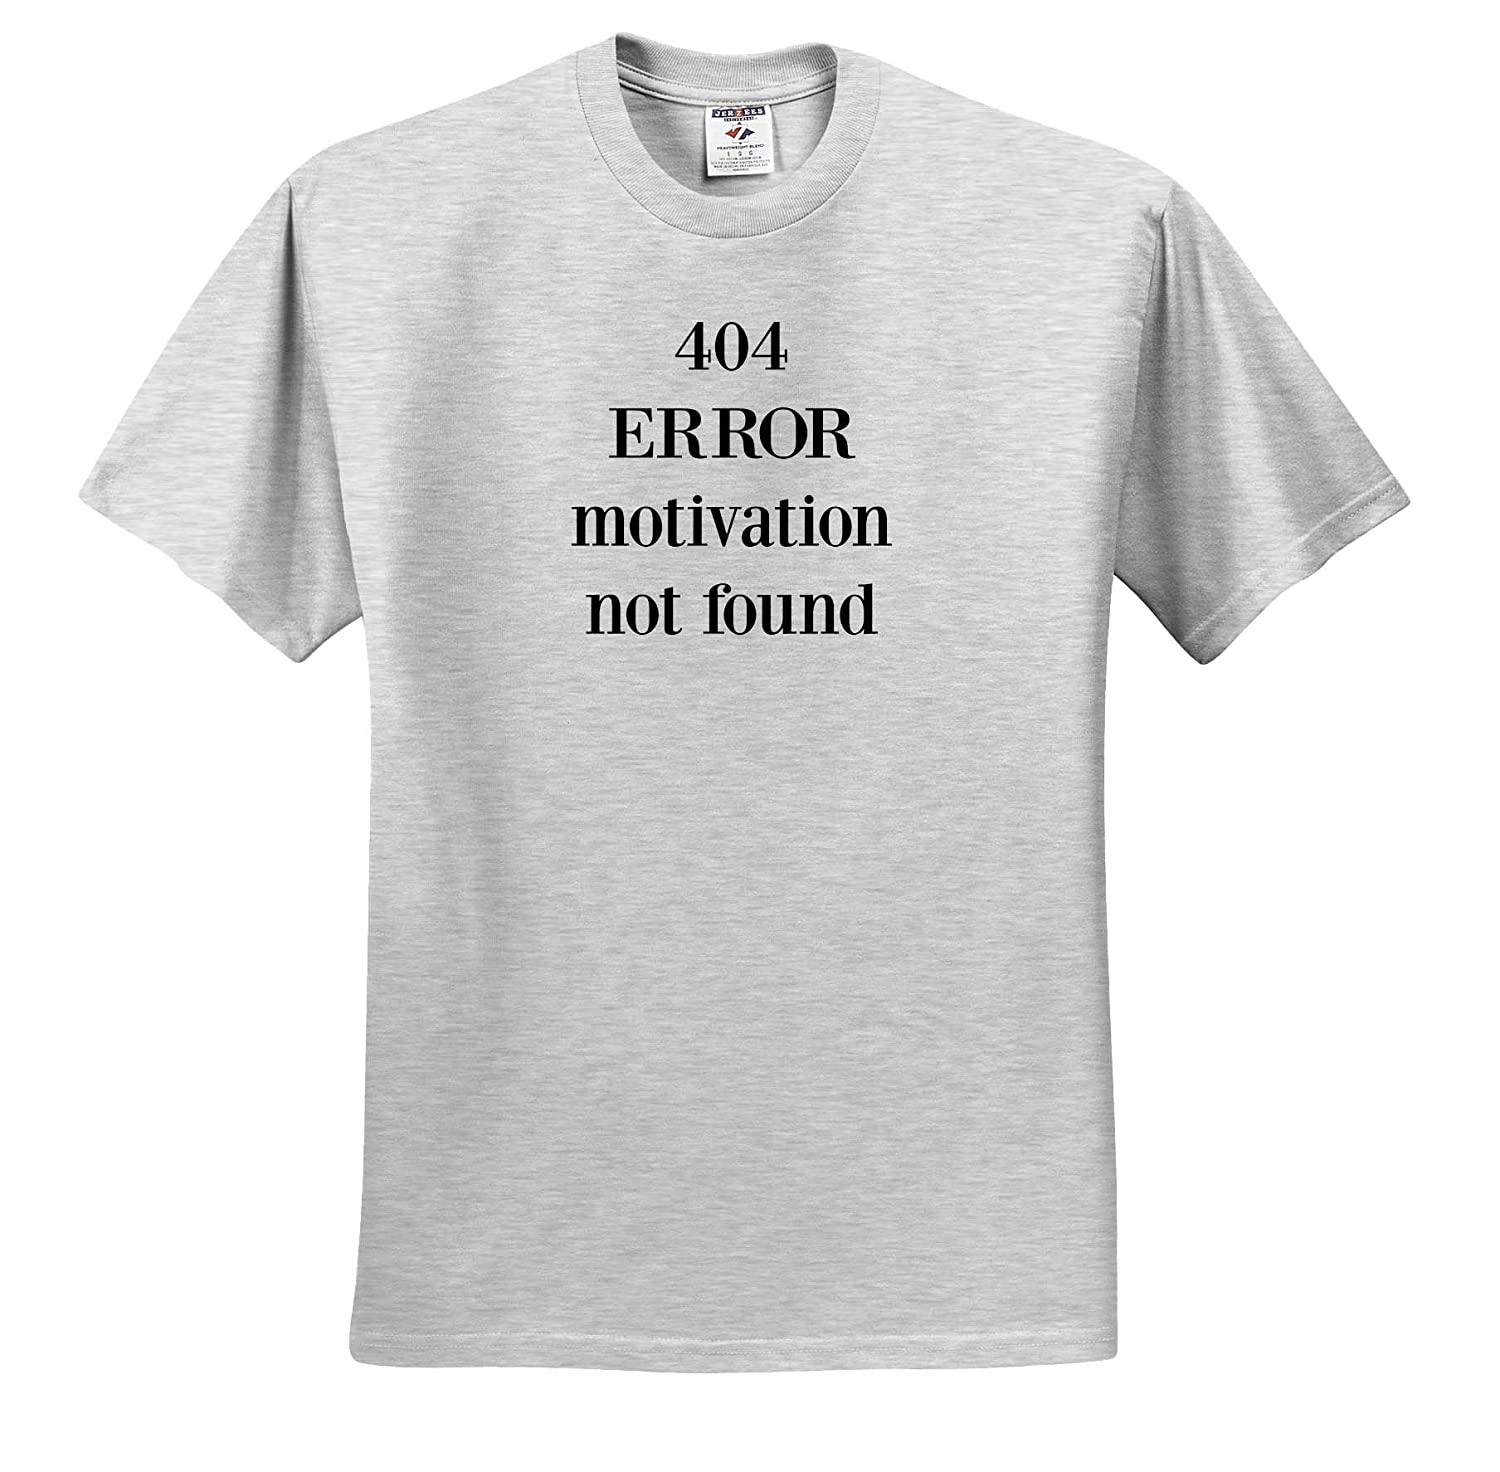 Adult T-Shirt XL ts/_317842 Image of 404 Error Motivation Not Found Quote 3dRose Gabriella-Quote